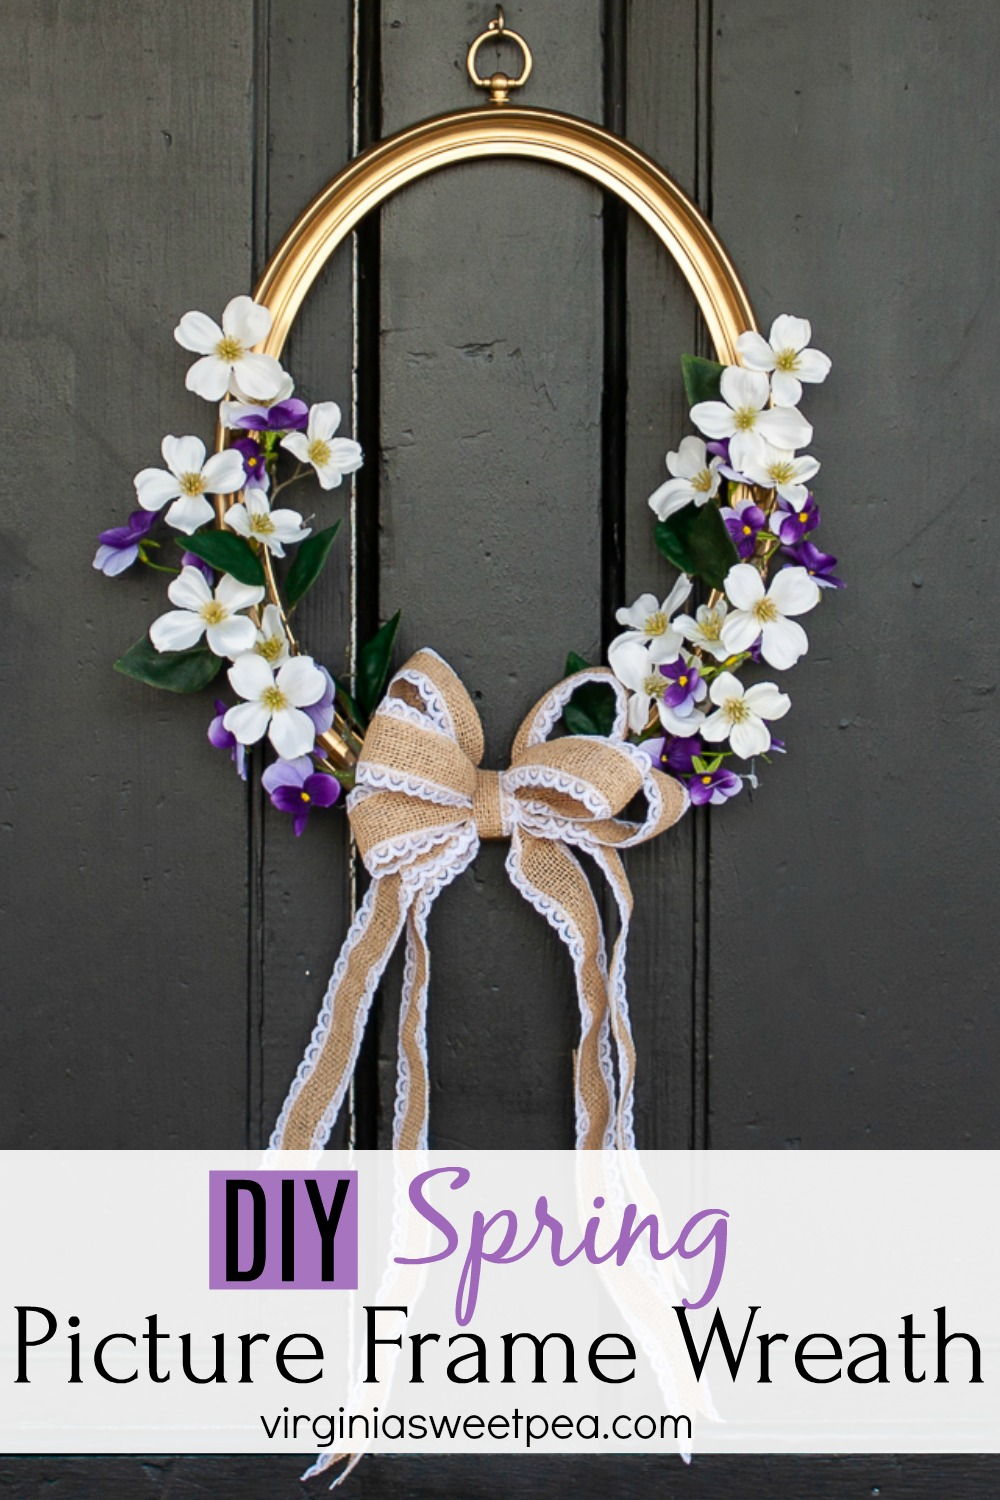 DIY Spring Picture Frame Wreath - Use a picture frame to make a wreath for your home for spring. #springwreath #upcycledproject #wreath #pictureframewreath via @spaula